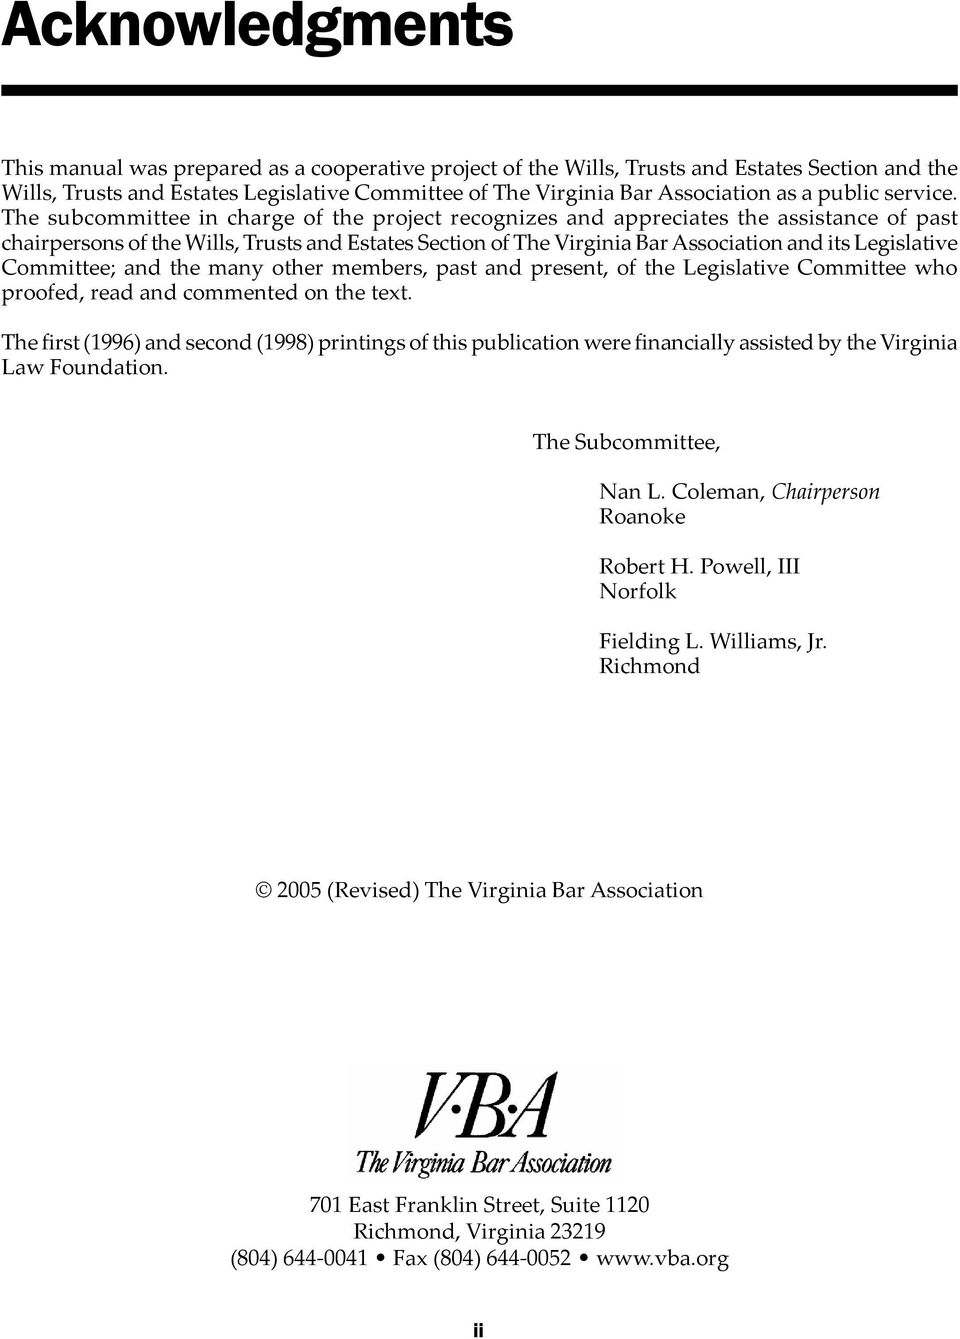 The subcommittee in charge of the project recognizes and appreciates the assistance of past chairpersons of the Wills, Trusts and Estates Section of The Virginia Bar Association and its Legislative